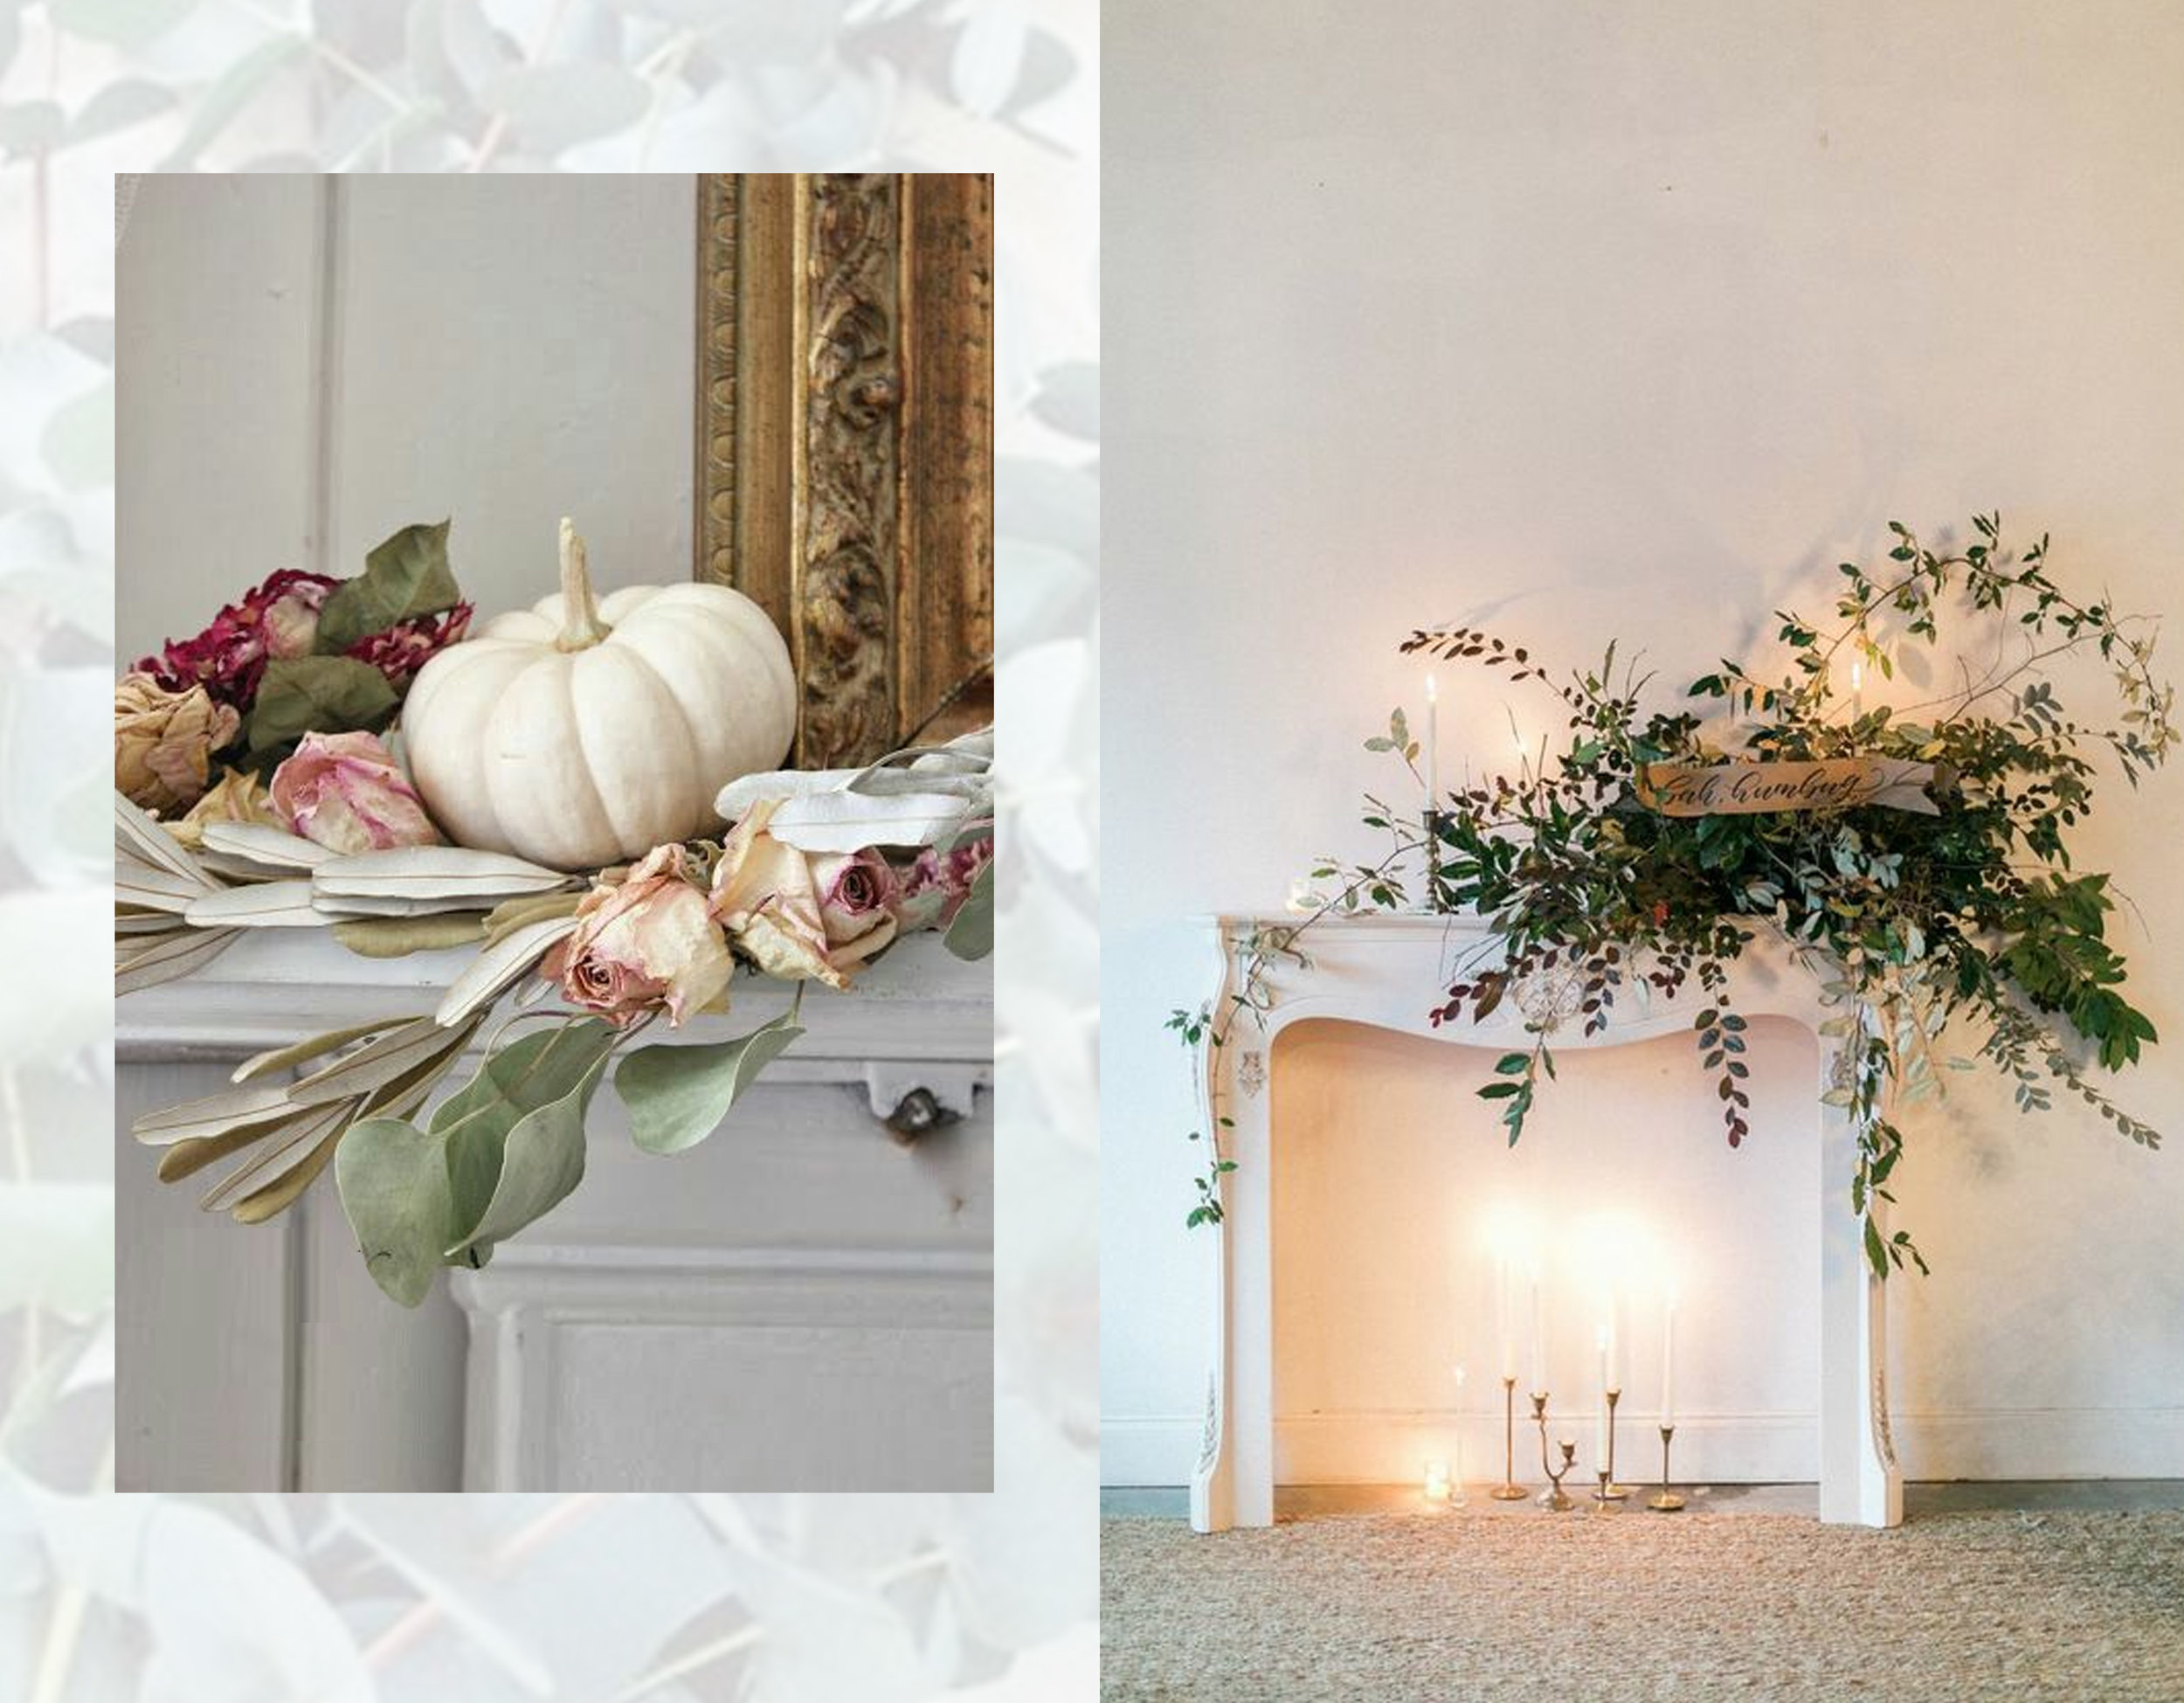 baroque inspired decor via  Pinterest  - mantel piece via  The Dreamery Event  s